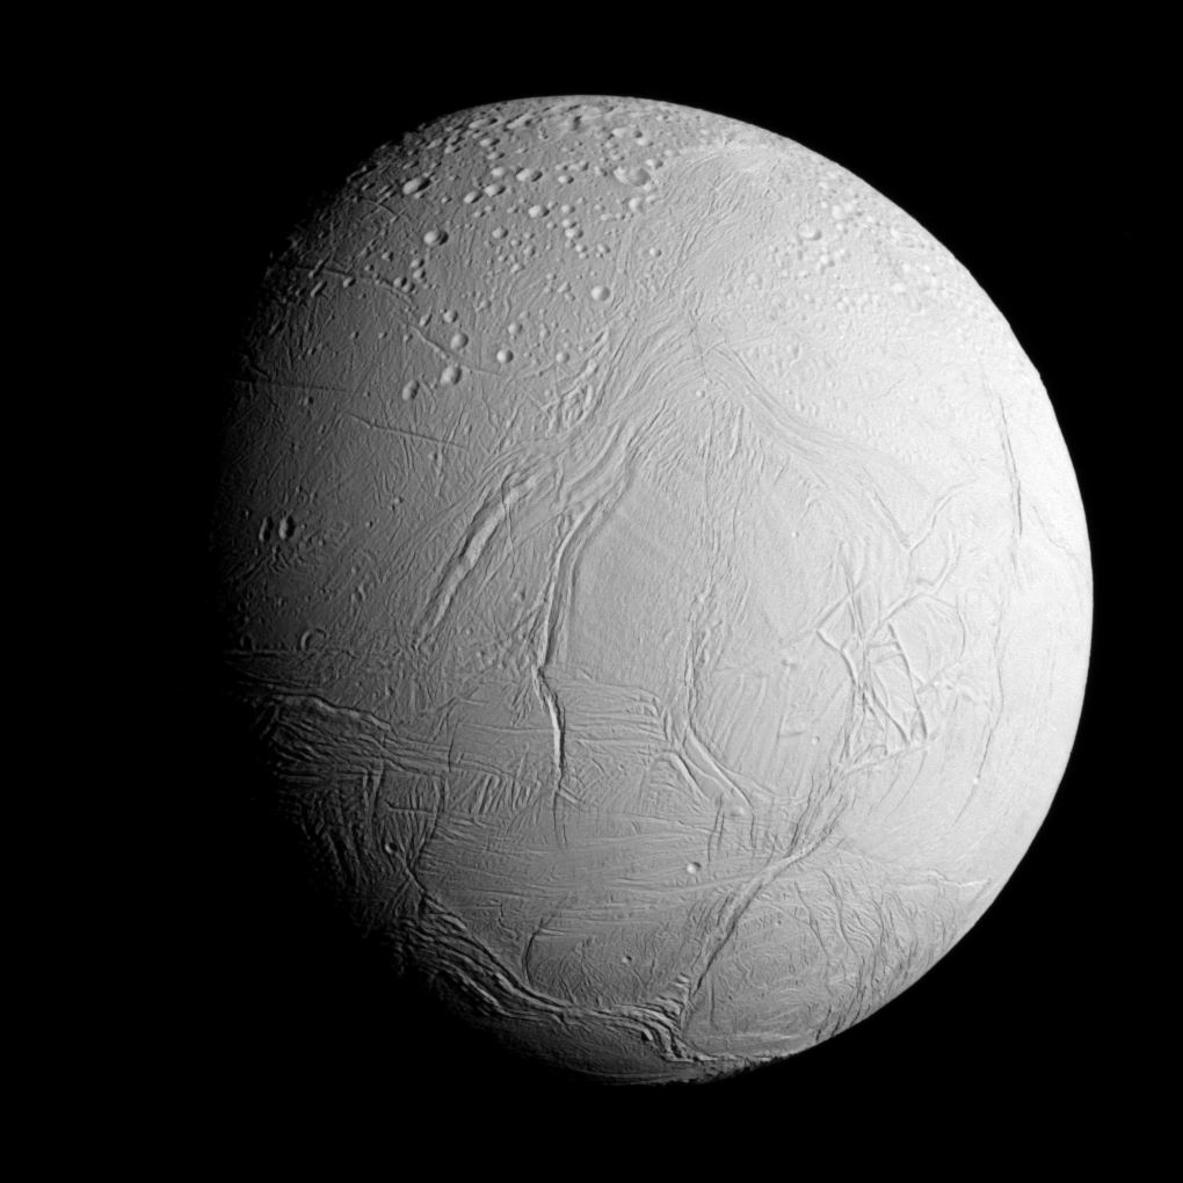 Enigmatic Enceladus (504km in diameter). - Image Credit: NASA/JPL-Caltech/Space Science Institute